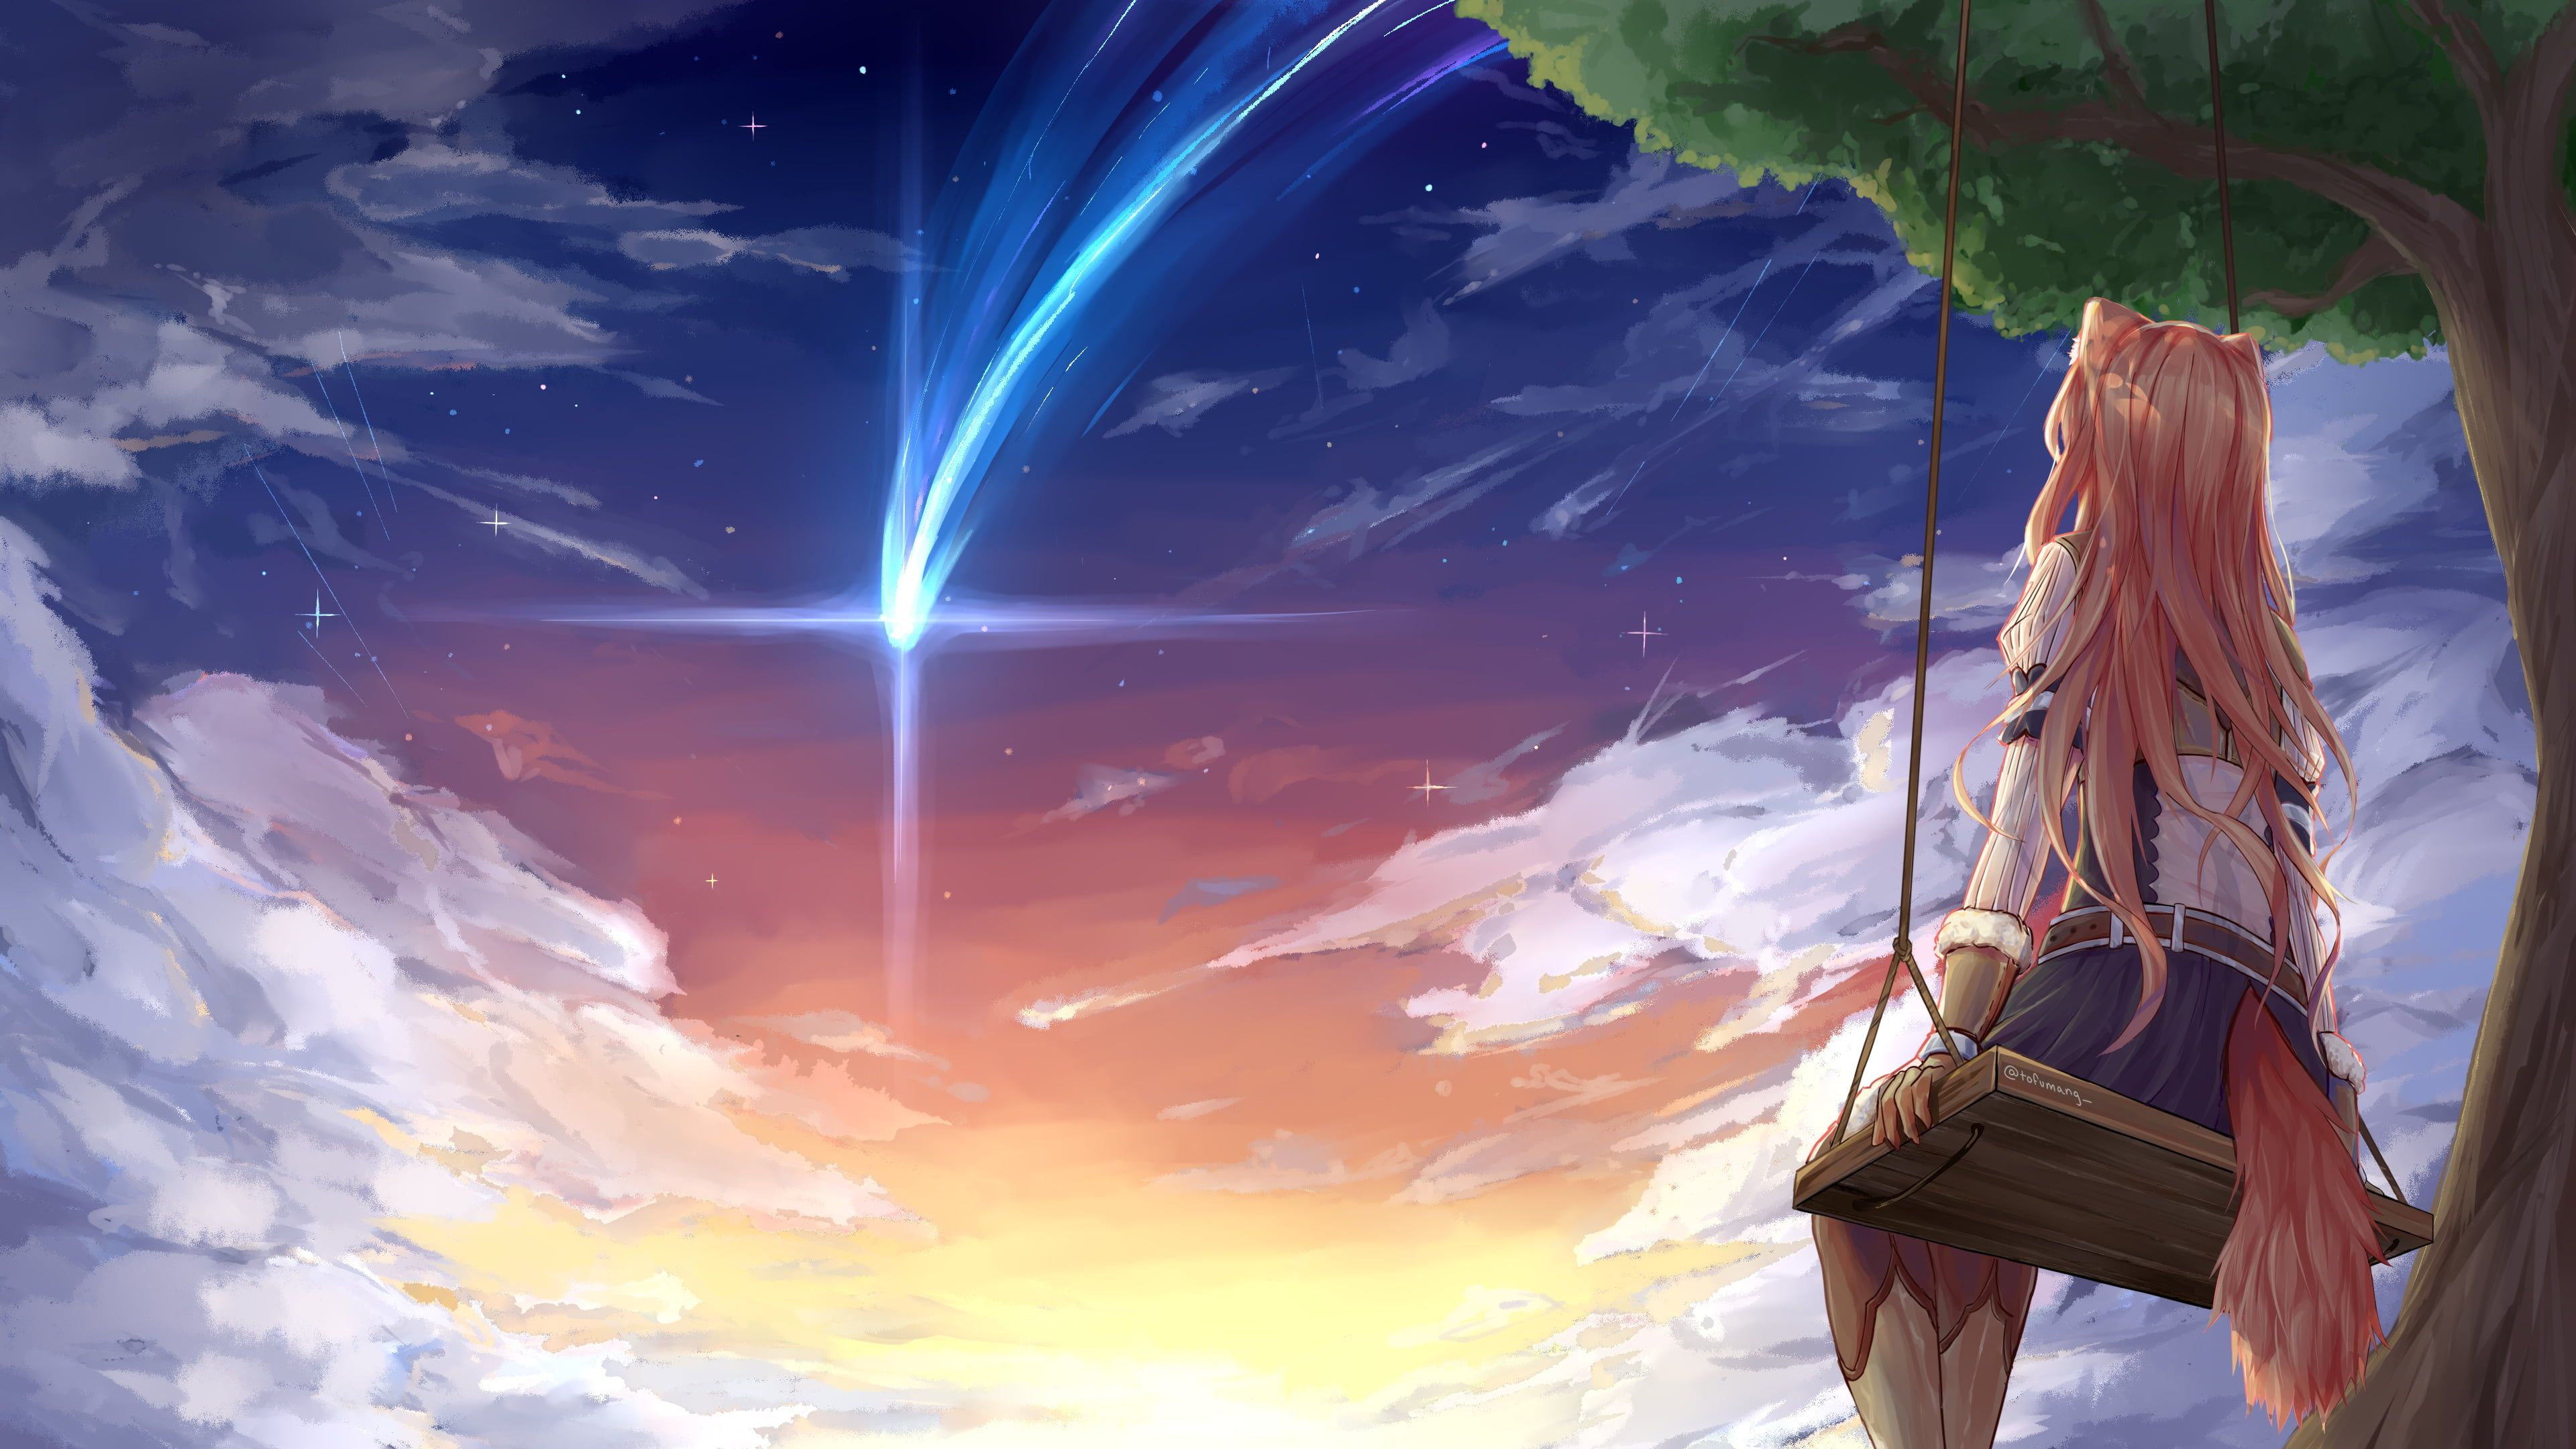 Anime The Rising Of The Shield Hero Brown Hair Cloud Raphtalia The Rising Of The Shield Hero Sky Sunset Anime Wallpaper Hero Wallpaper Wallpaper Pc Anime